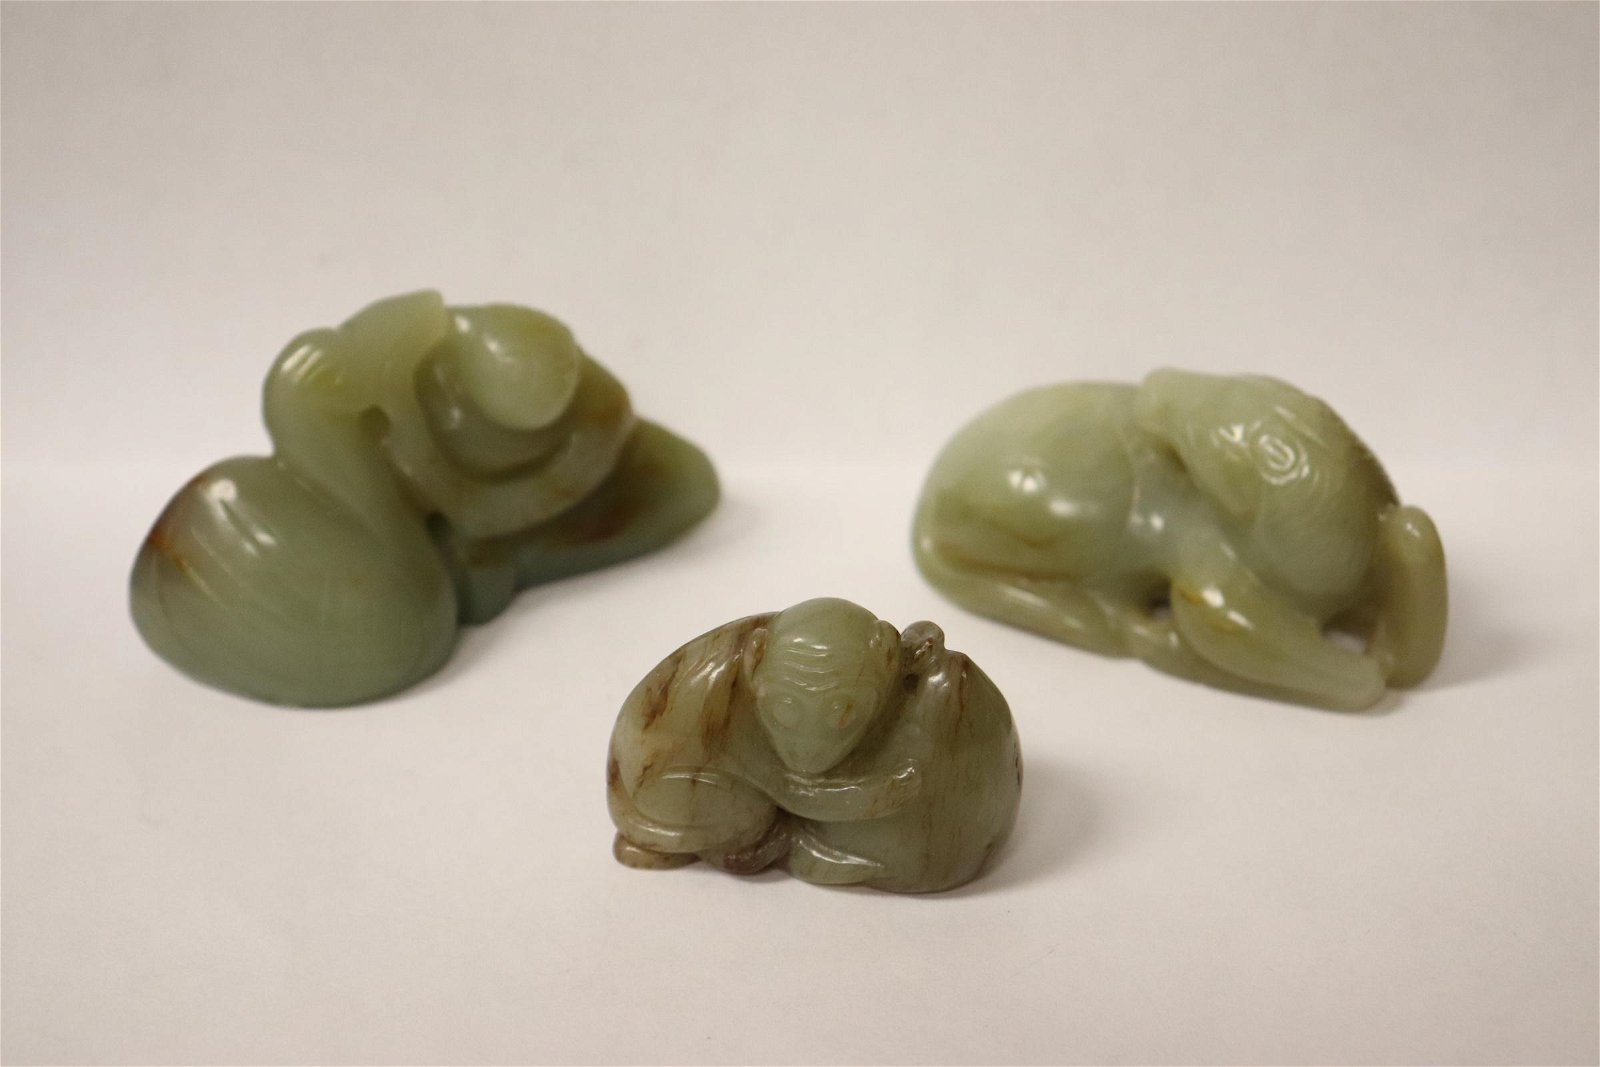 3 celadon jade carved ornaments